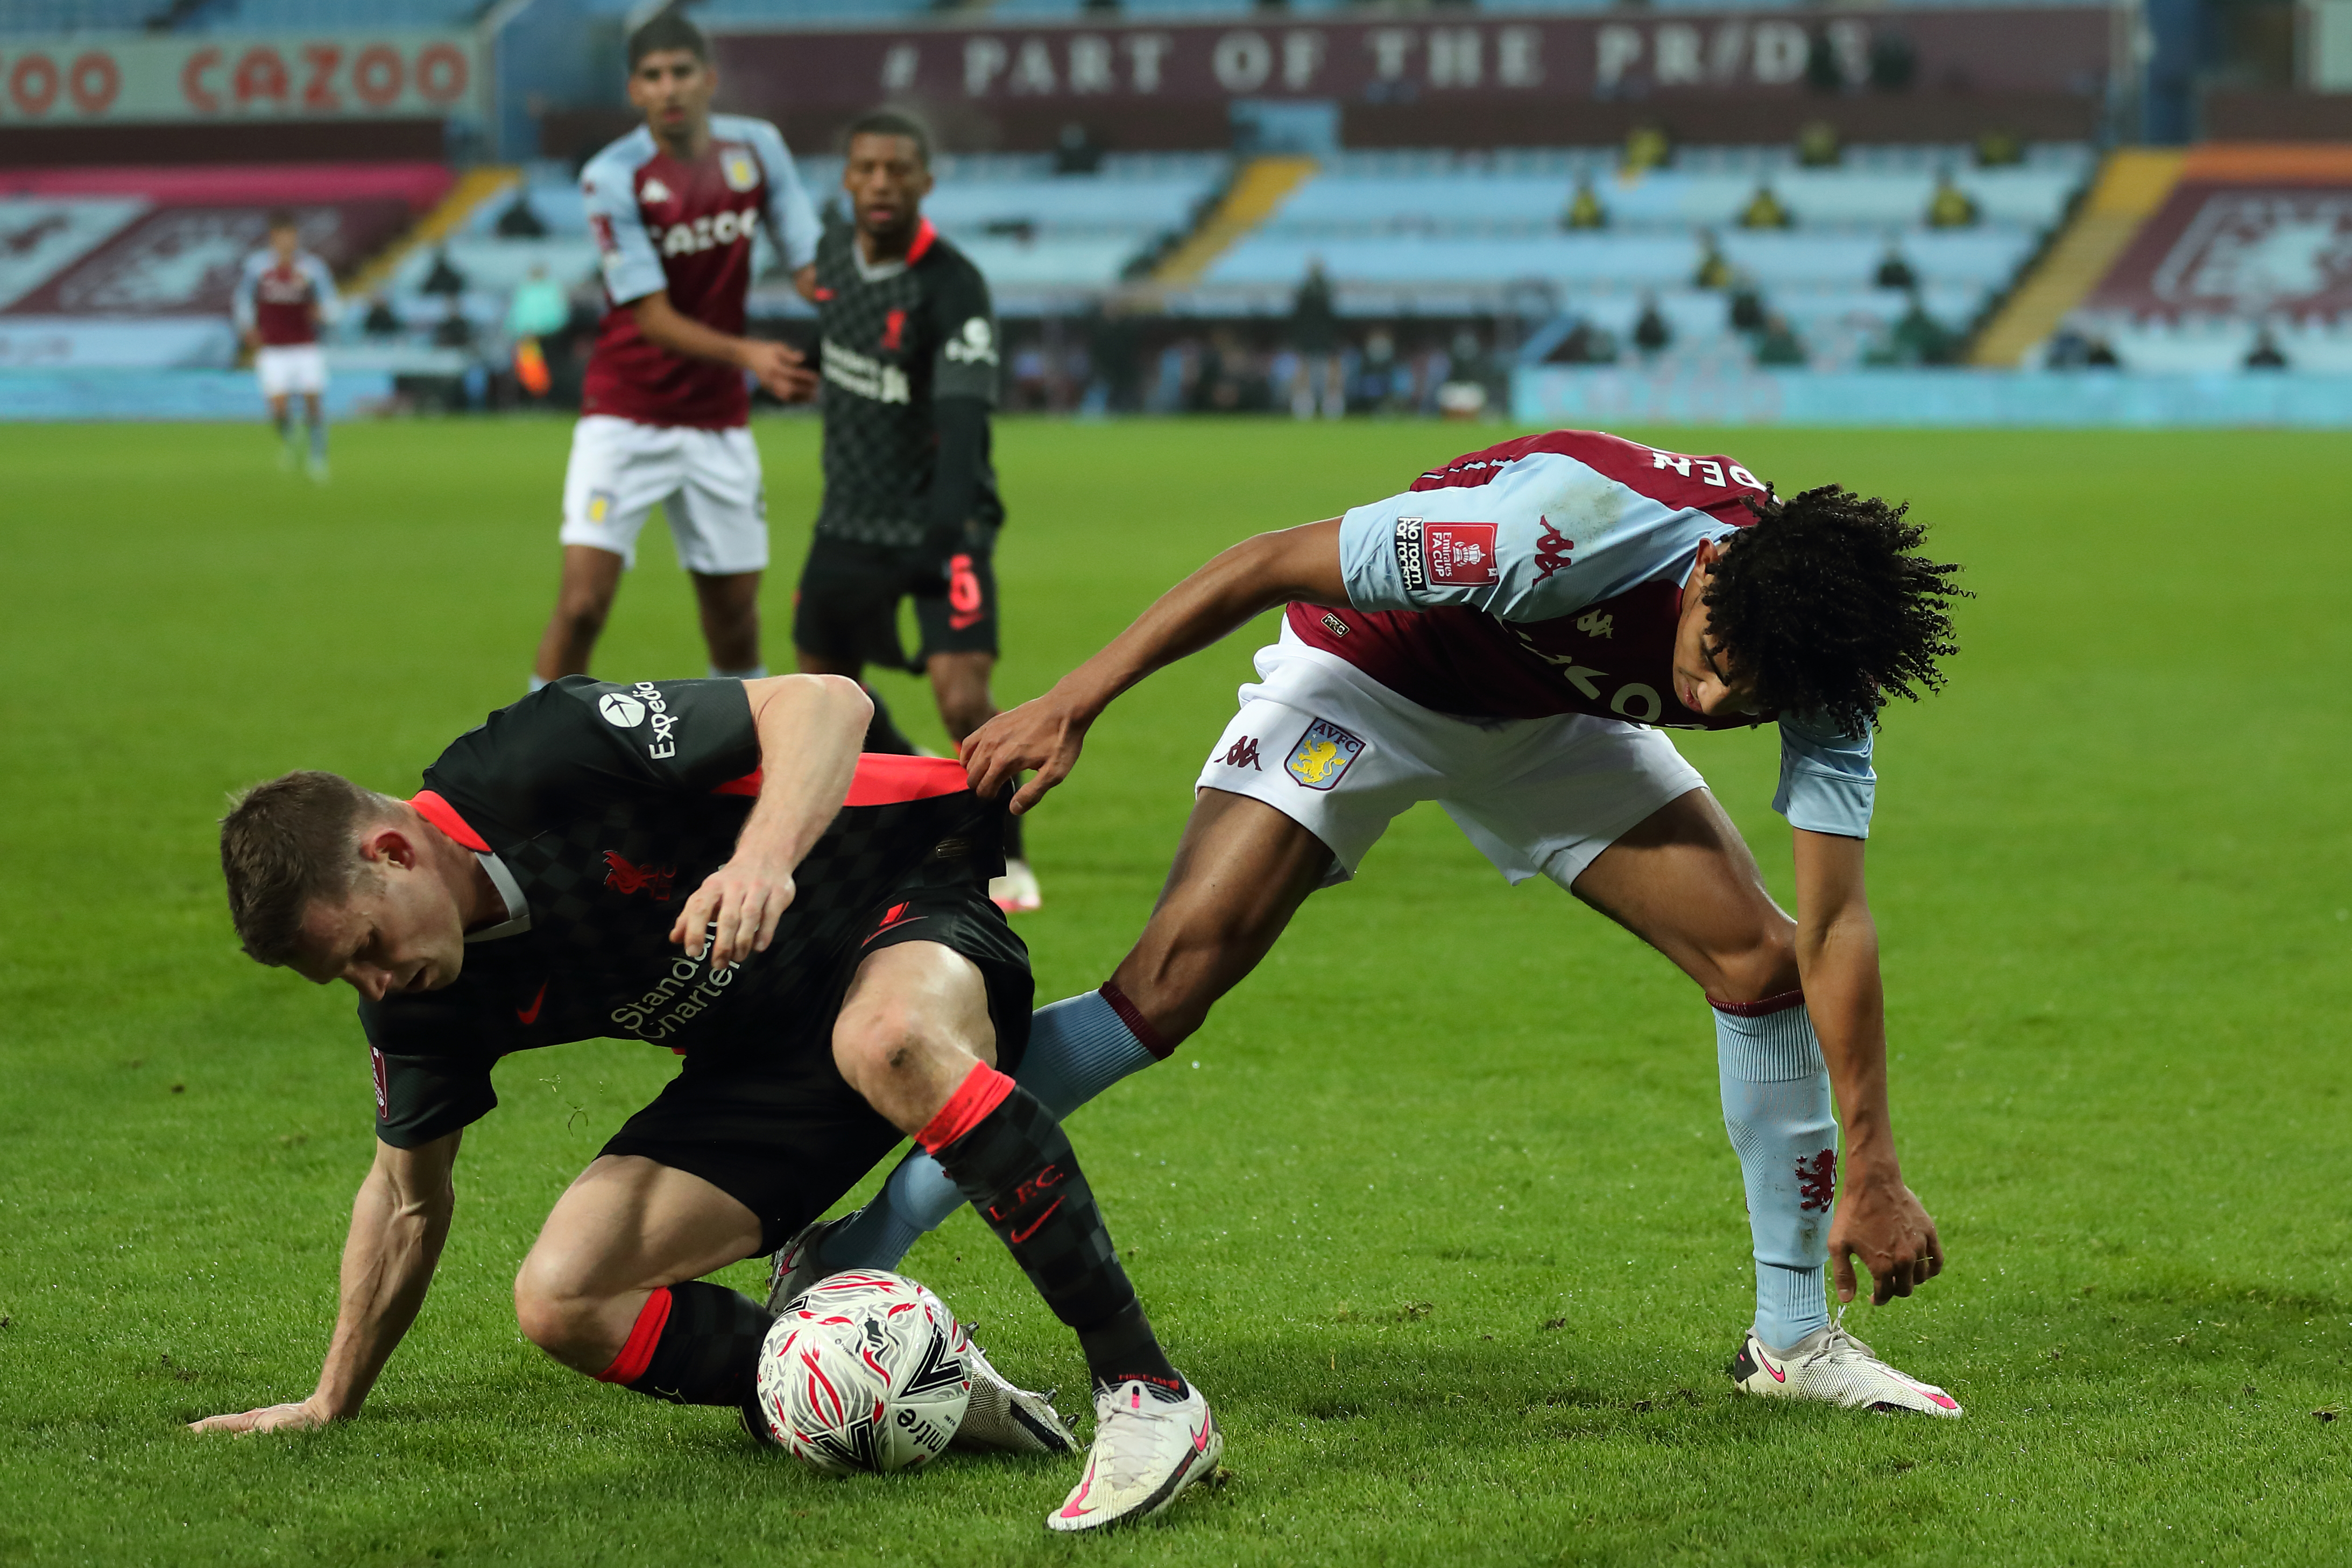 James Milner of Liverpool and Kaine Hayden of Aston Villa during the FA Cup Third Round match between Aston Villa and Liverpool at Villa Park on January 8, 2021 in Birmingham, England.